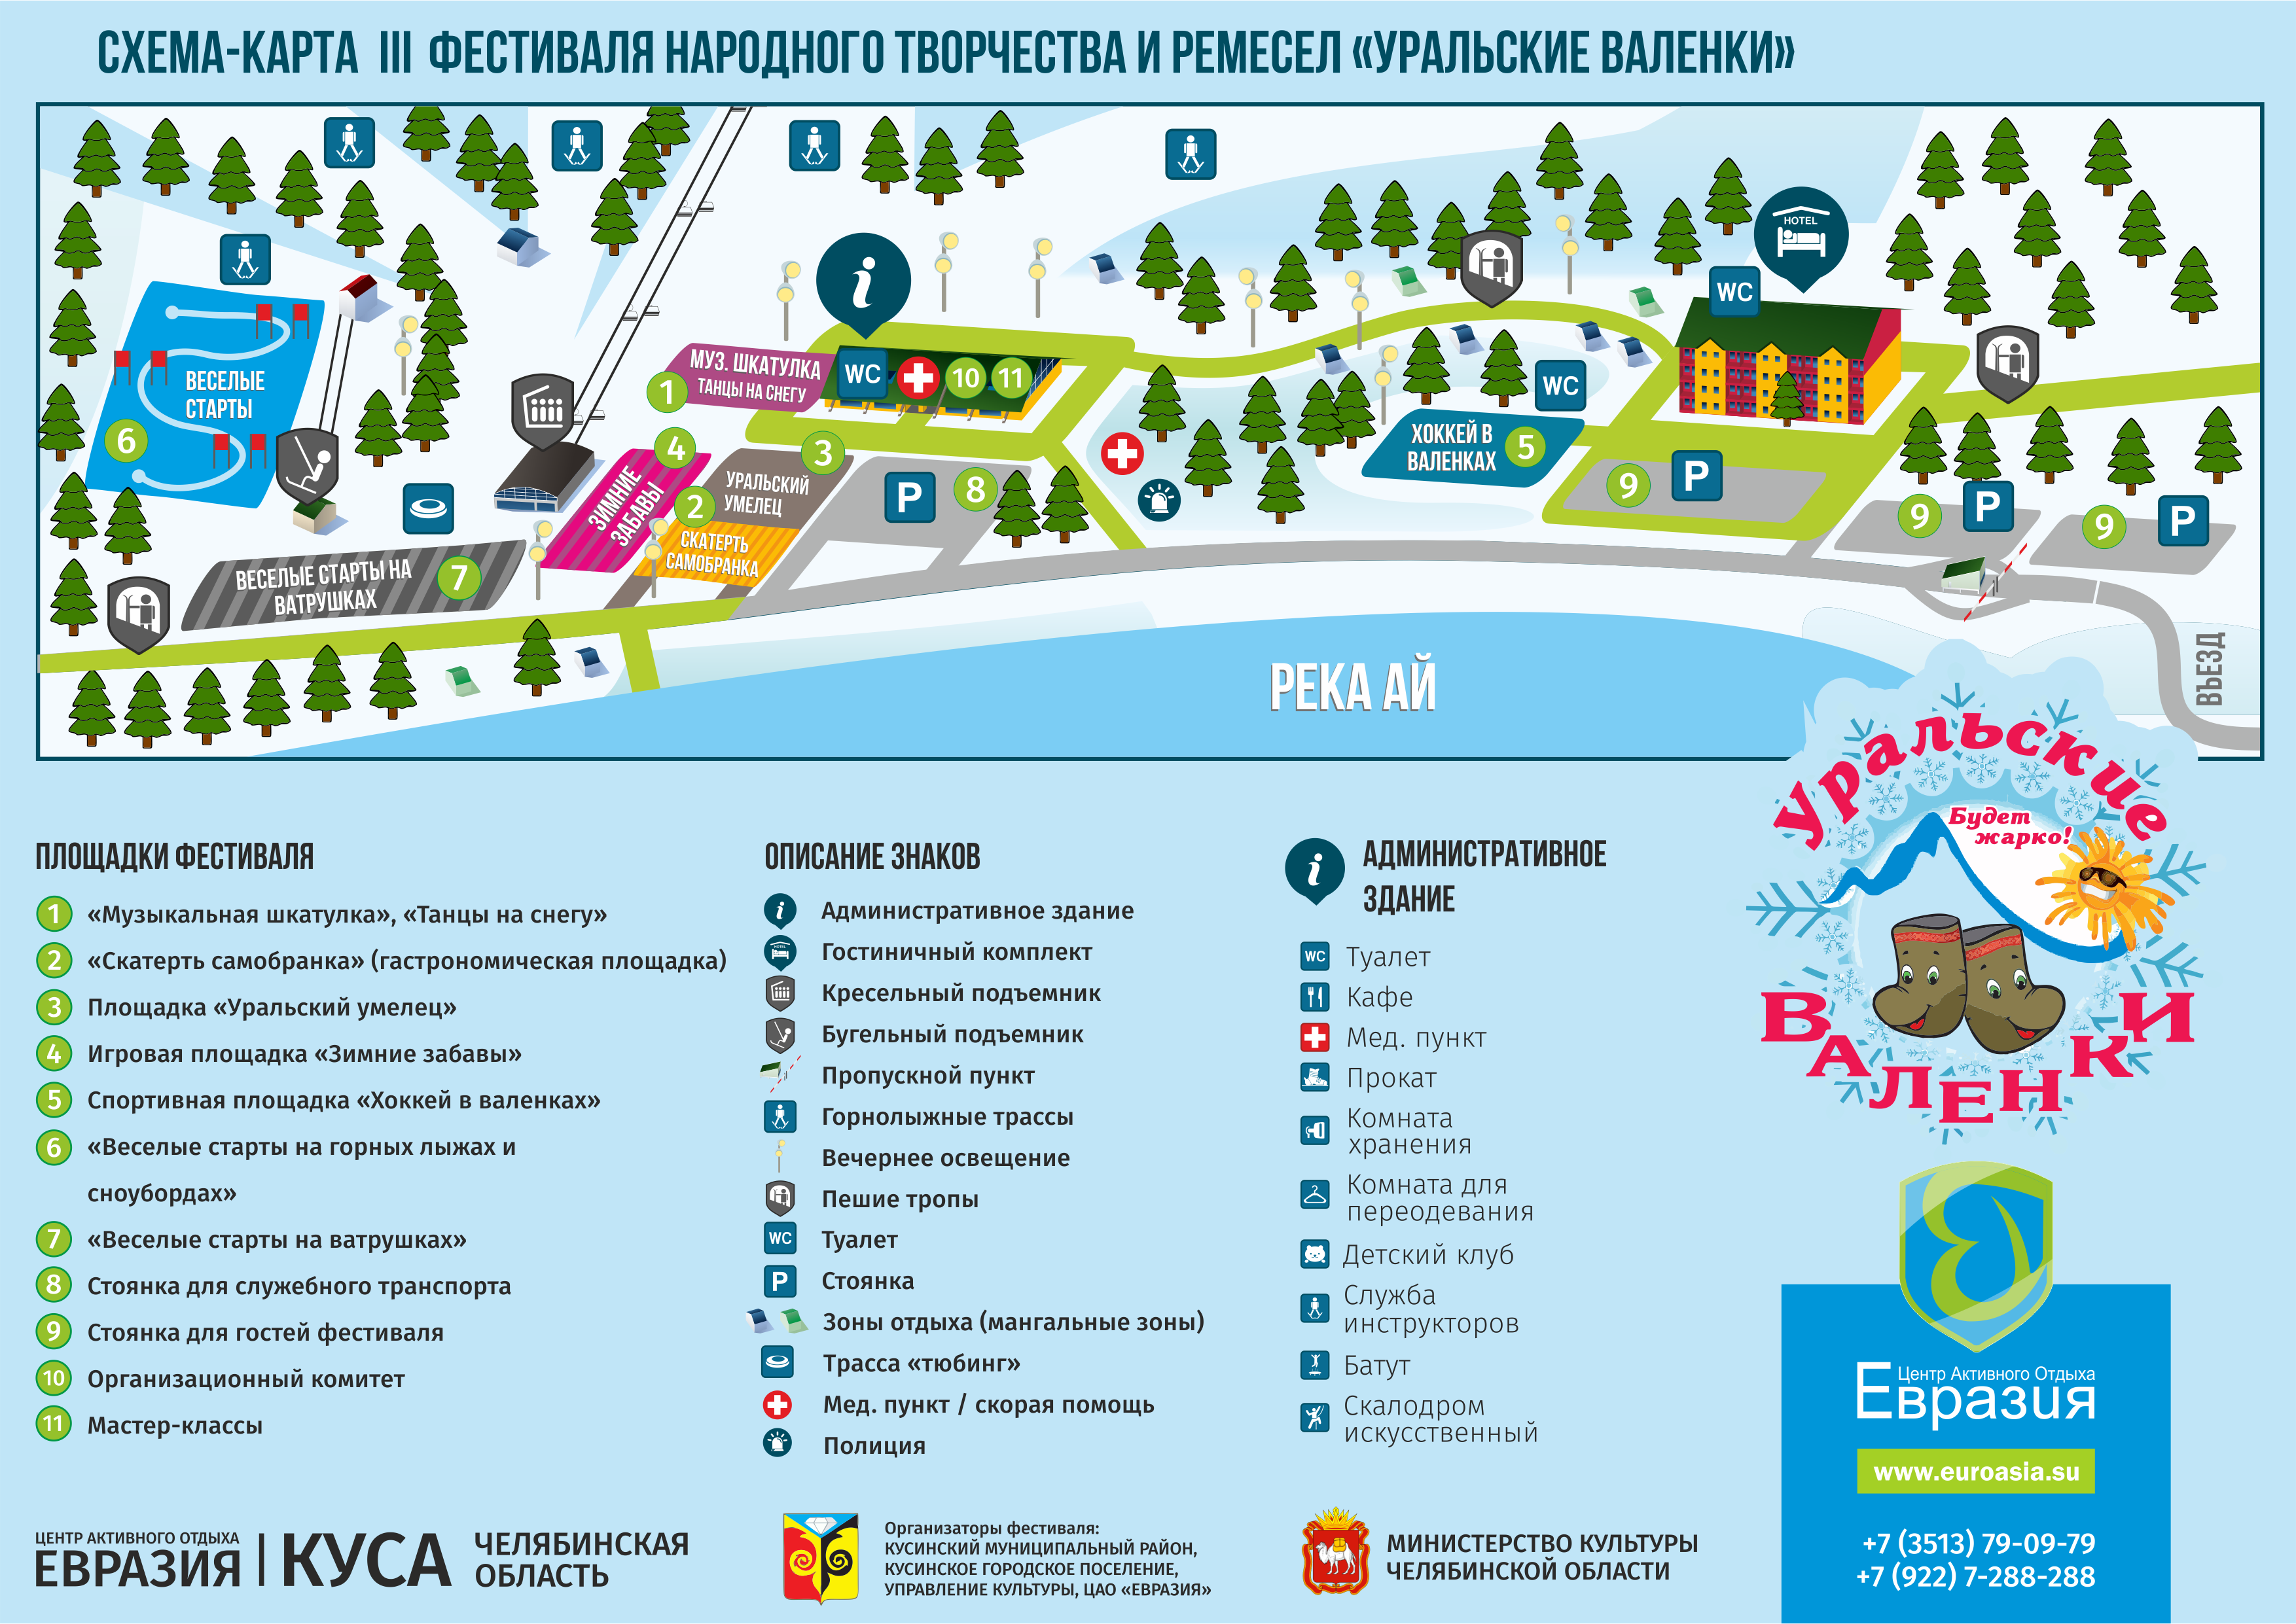 fest-val-map